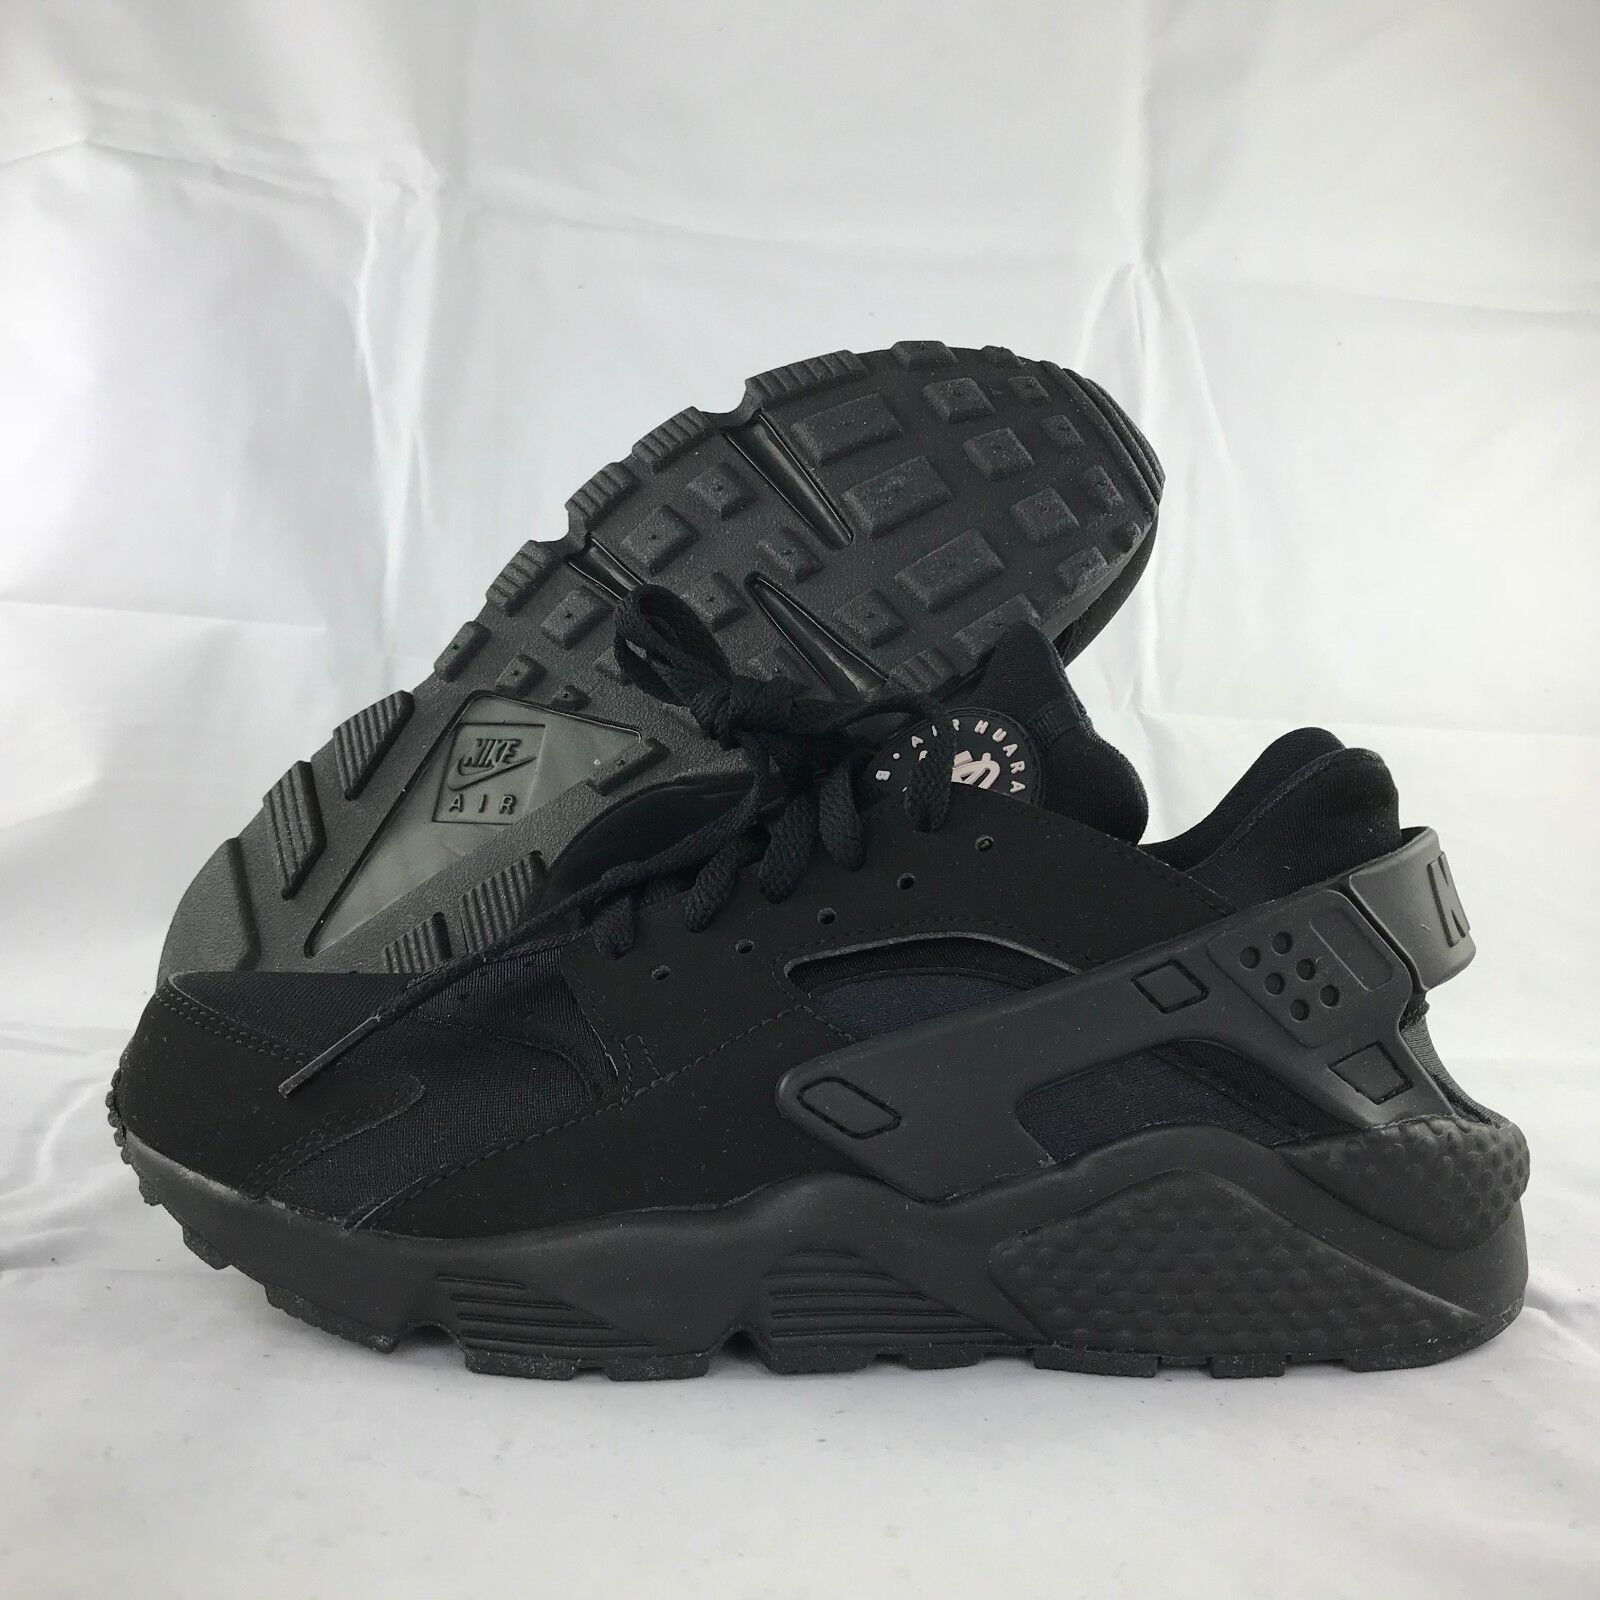 47a8d9db271f3 Nike Air Huarache Triple Black White 318429-003 Me.. in Clothing ...